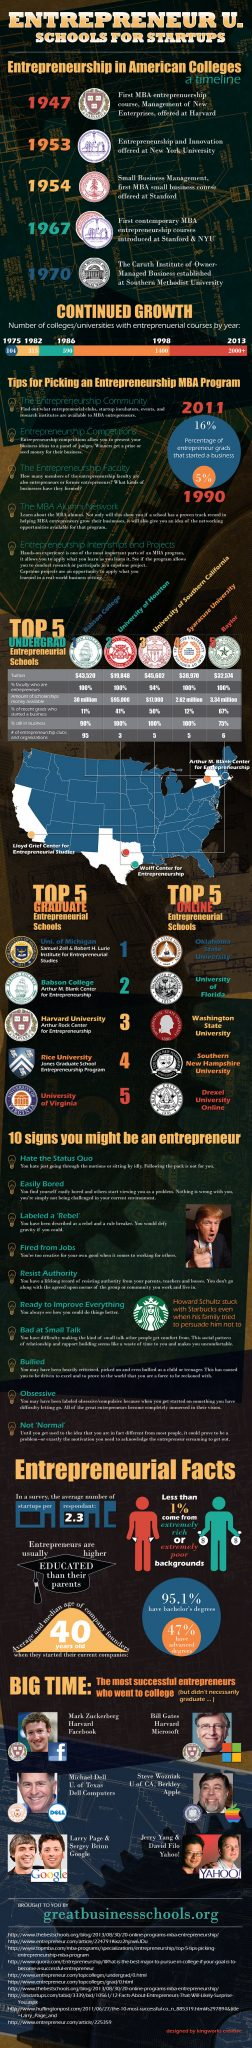 entrepreneurship education The gi bill provides education benefits to veterans and their dependents.